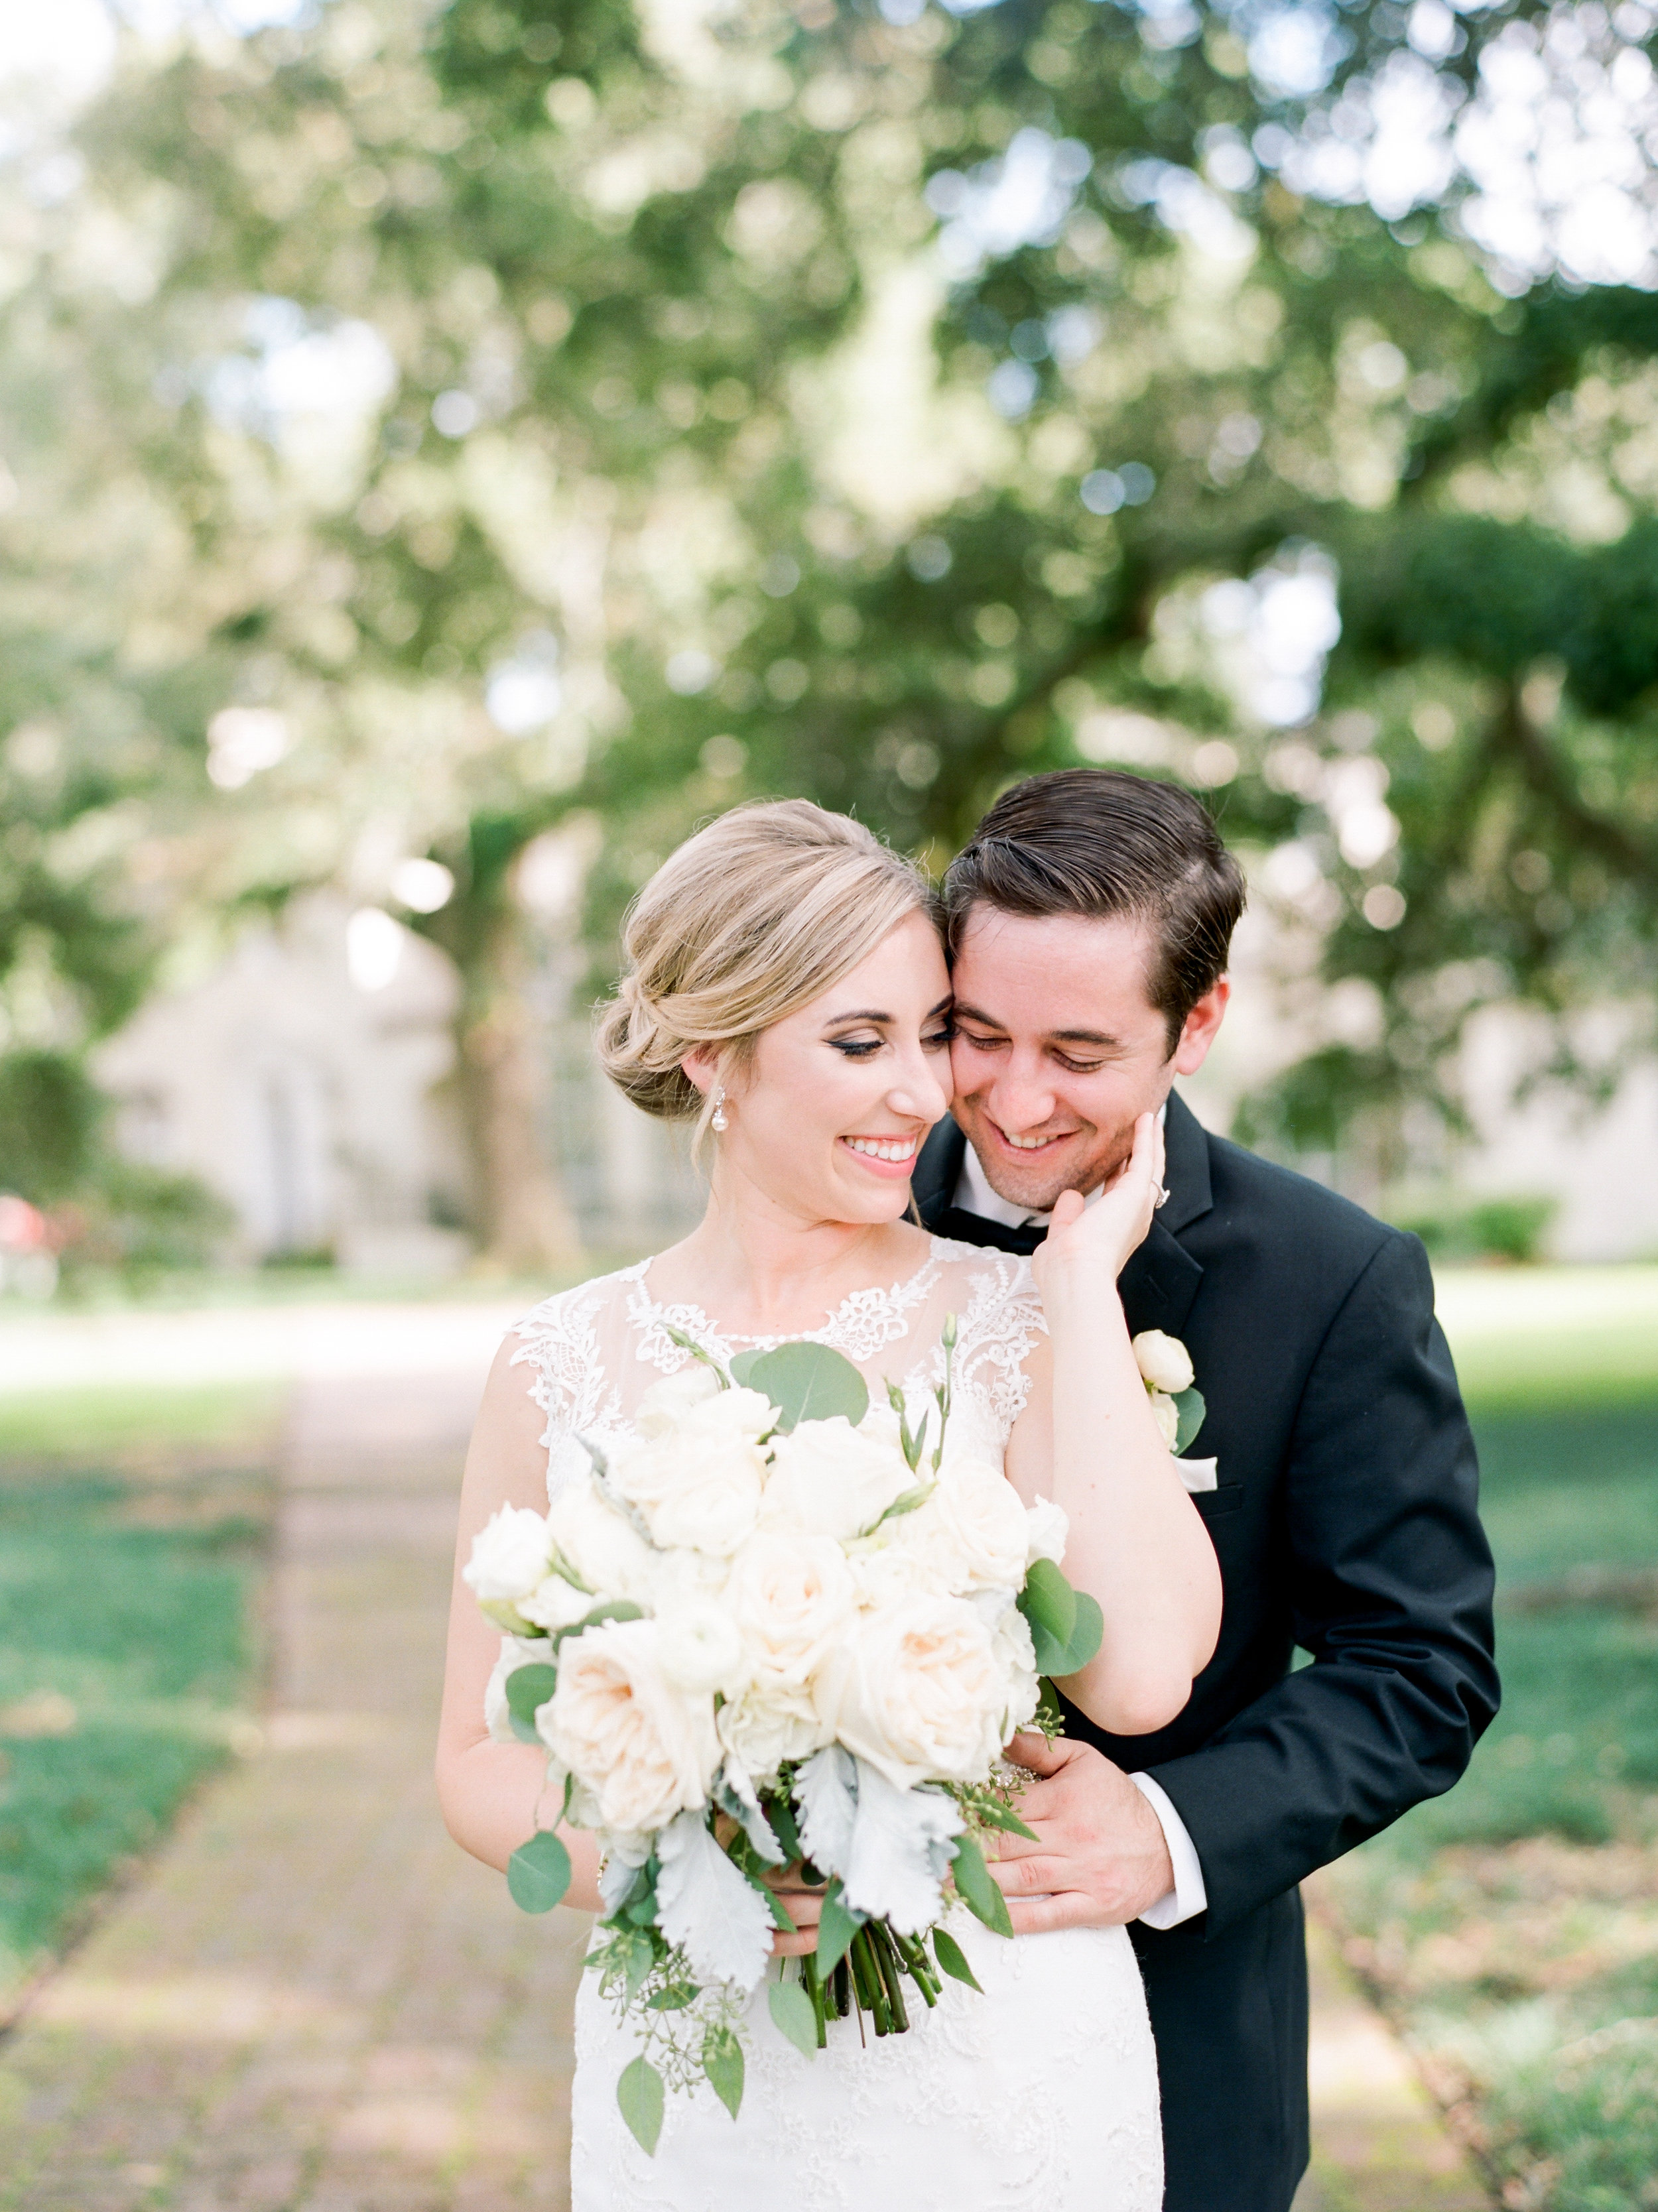 Southern Fete, Southern Wedding, Flowers by Rodney, Sarah Beth Photography, Bleu Coiffure